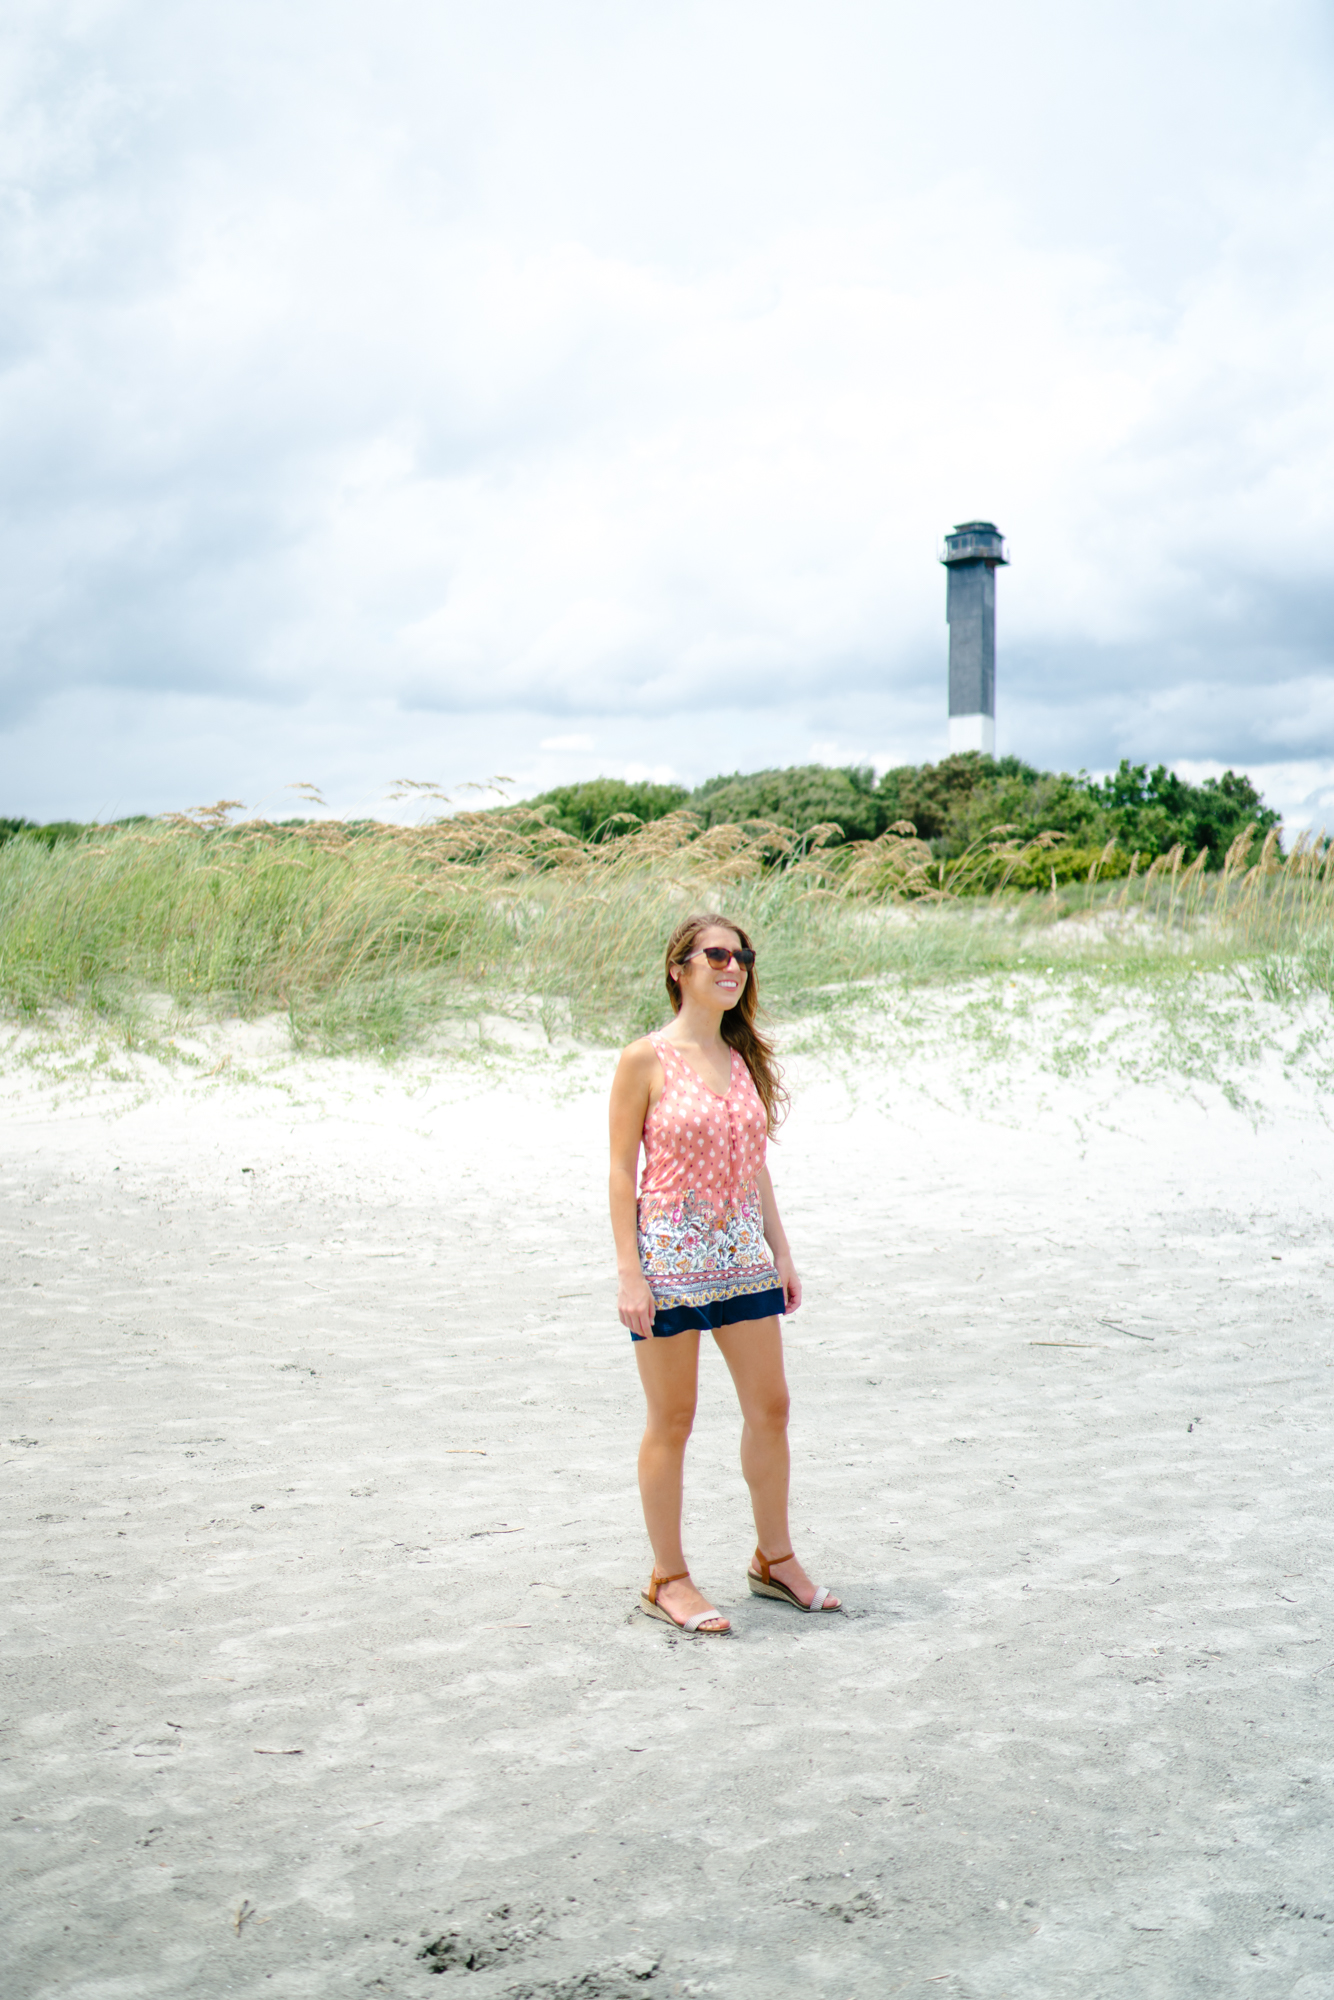 Perfect beach day on Sullivan's Island | Never Settle Travel